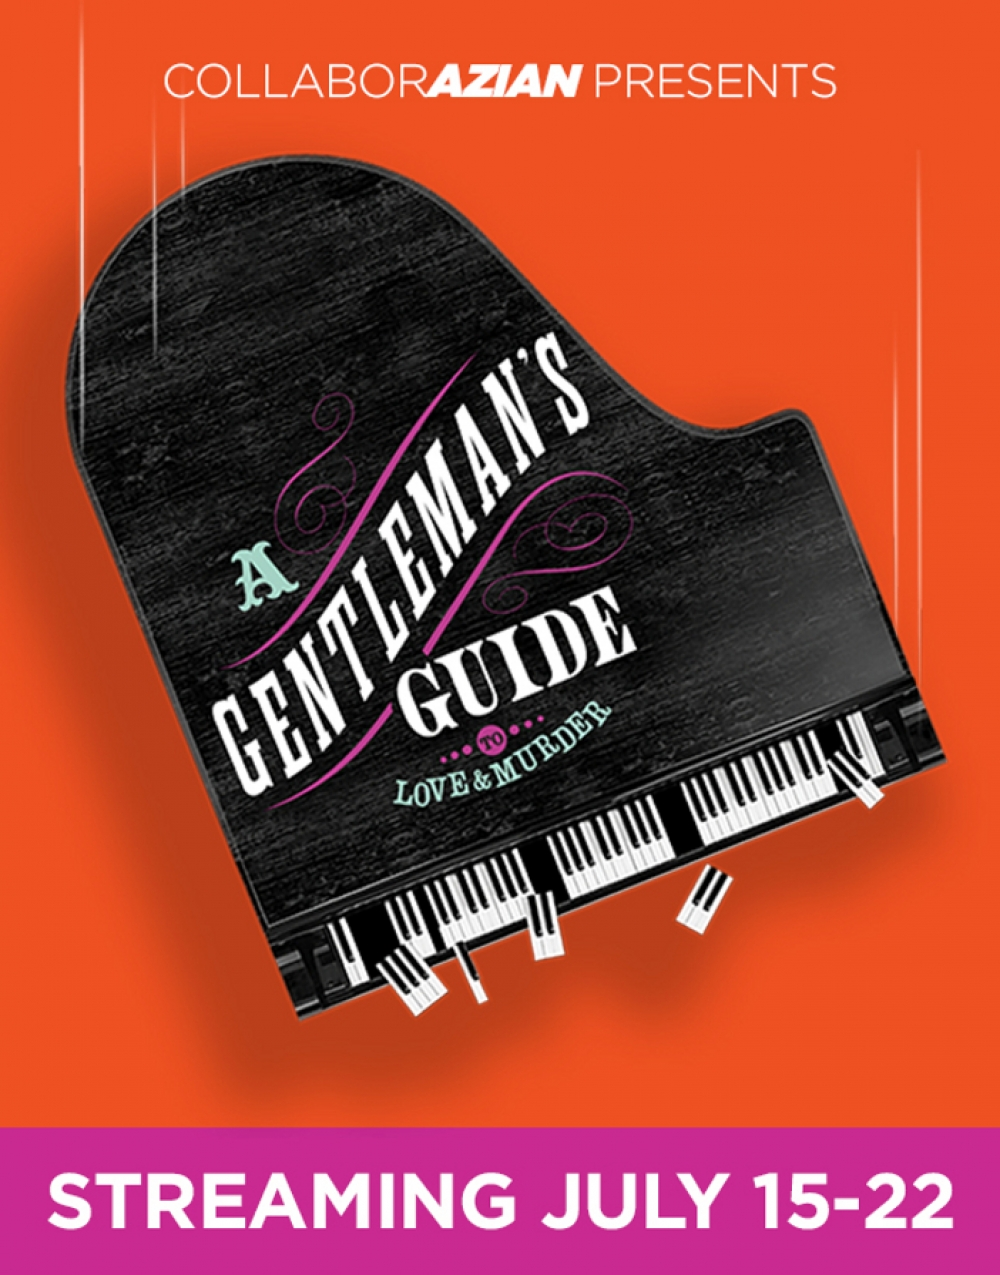 A Gentleman's Guide to Love & Murder at CollaborAzian